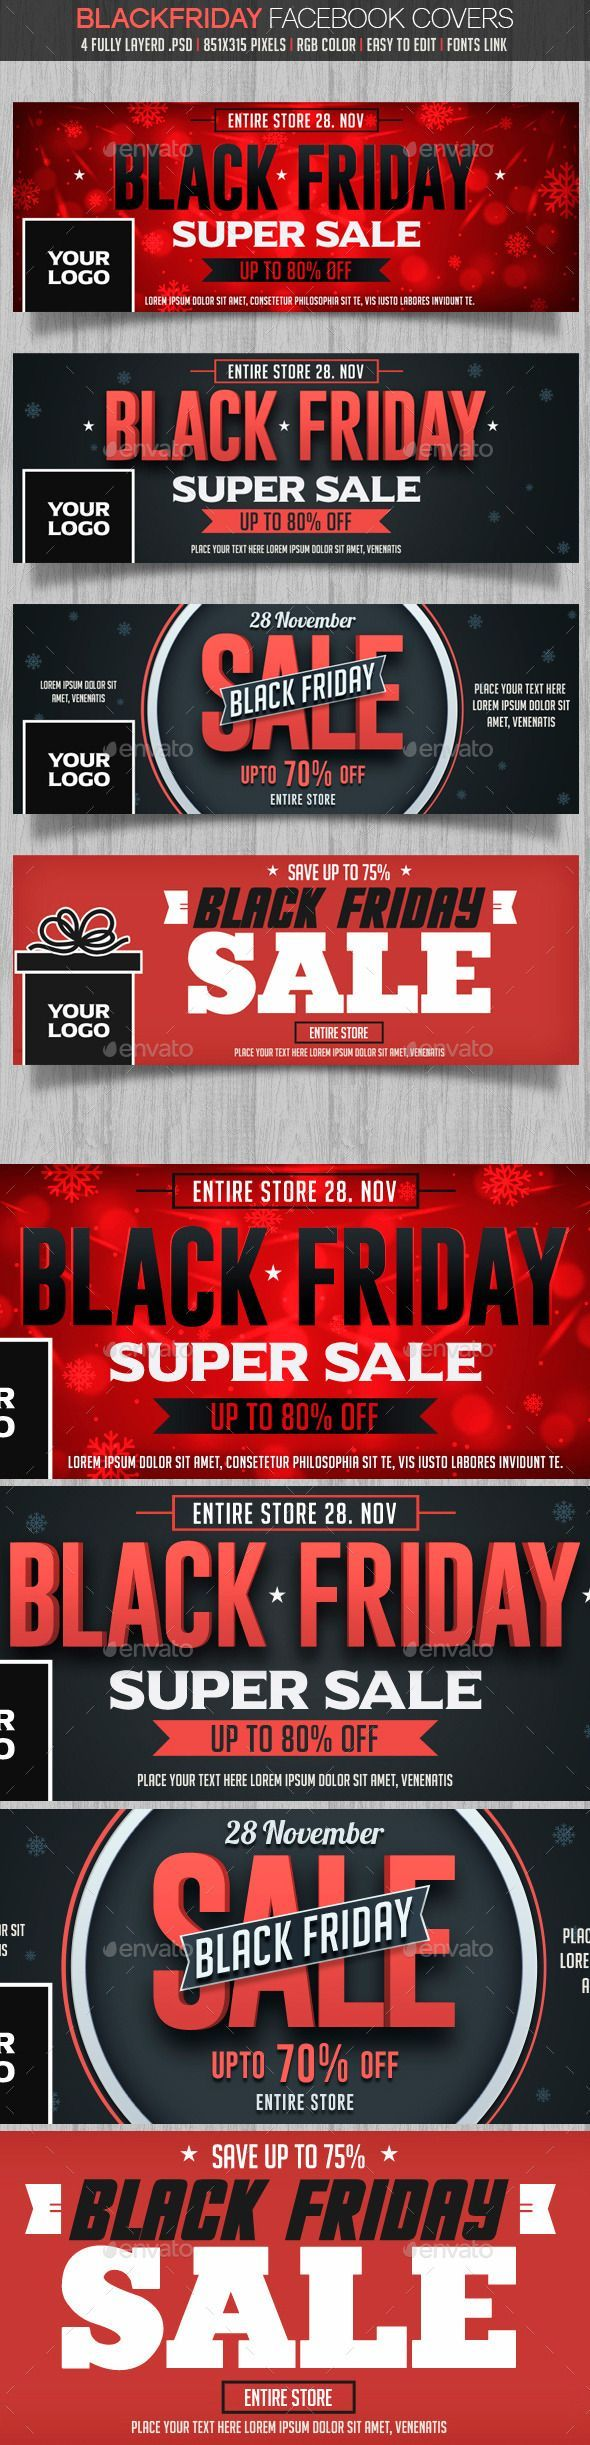 Black Friday Facebook Cover  PSD Template • Download ➝ https://graphicriver.net/item/black-friday-facebook-cover/13571499?ref=pxcr